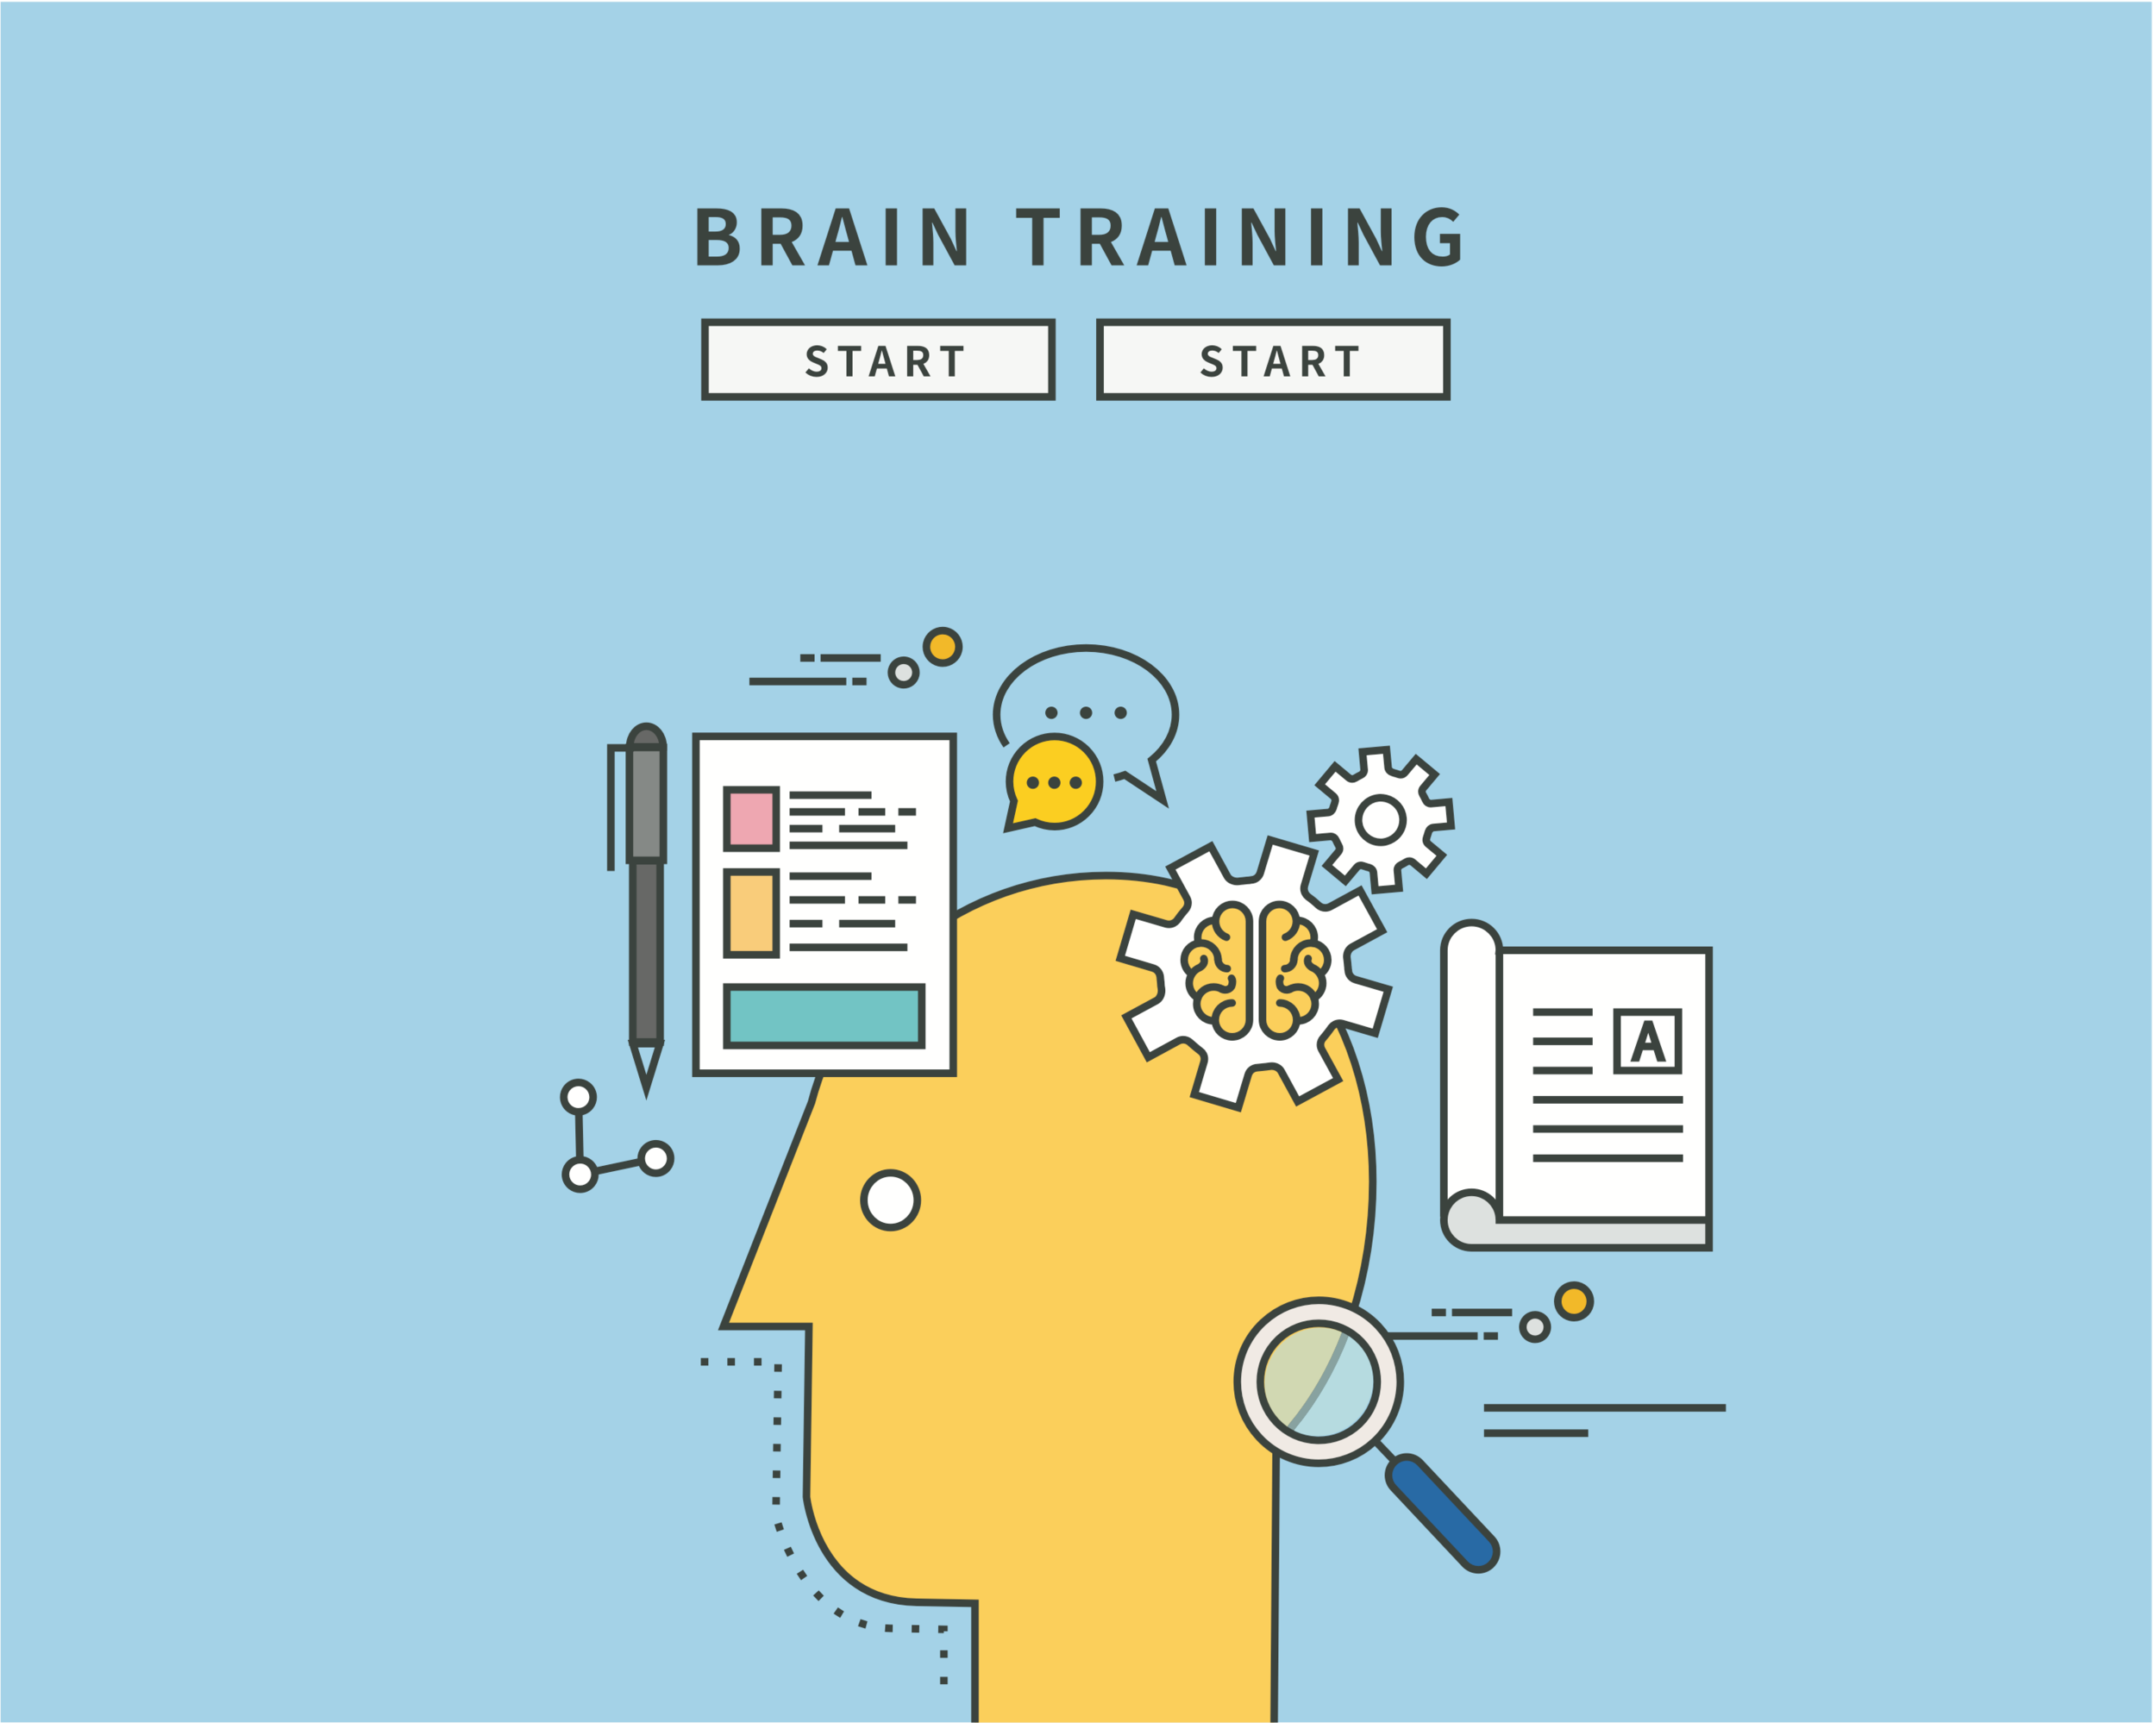 Brain training games may not help with cognition problems